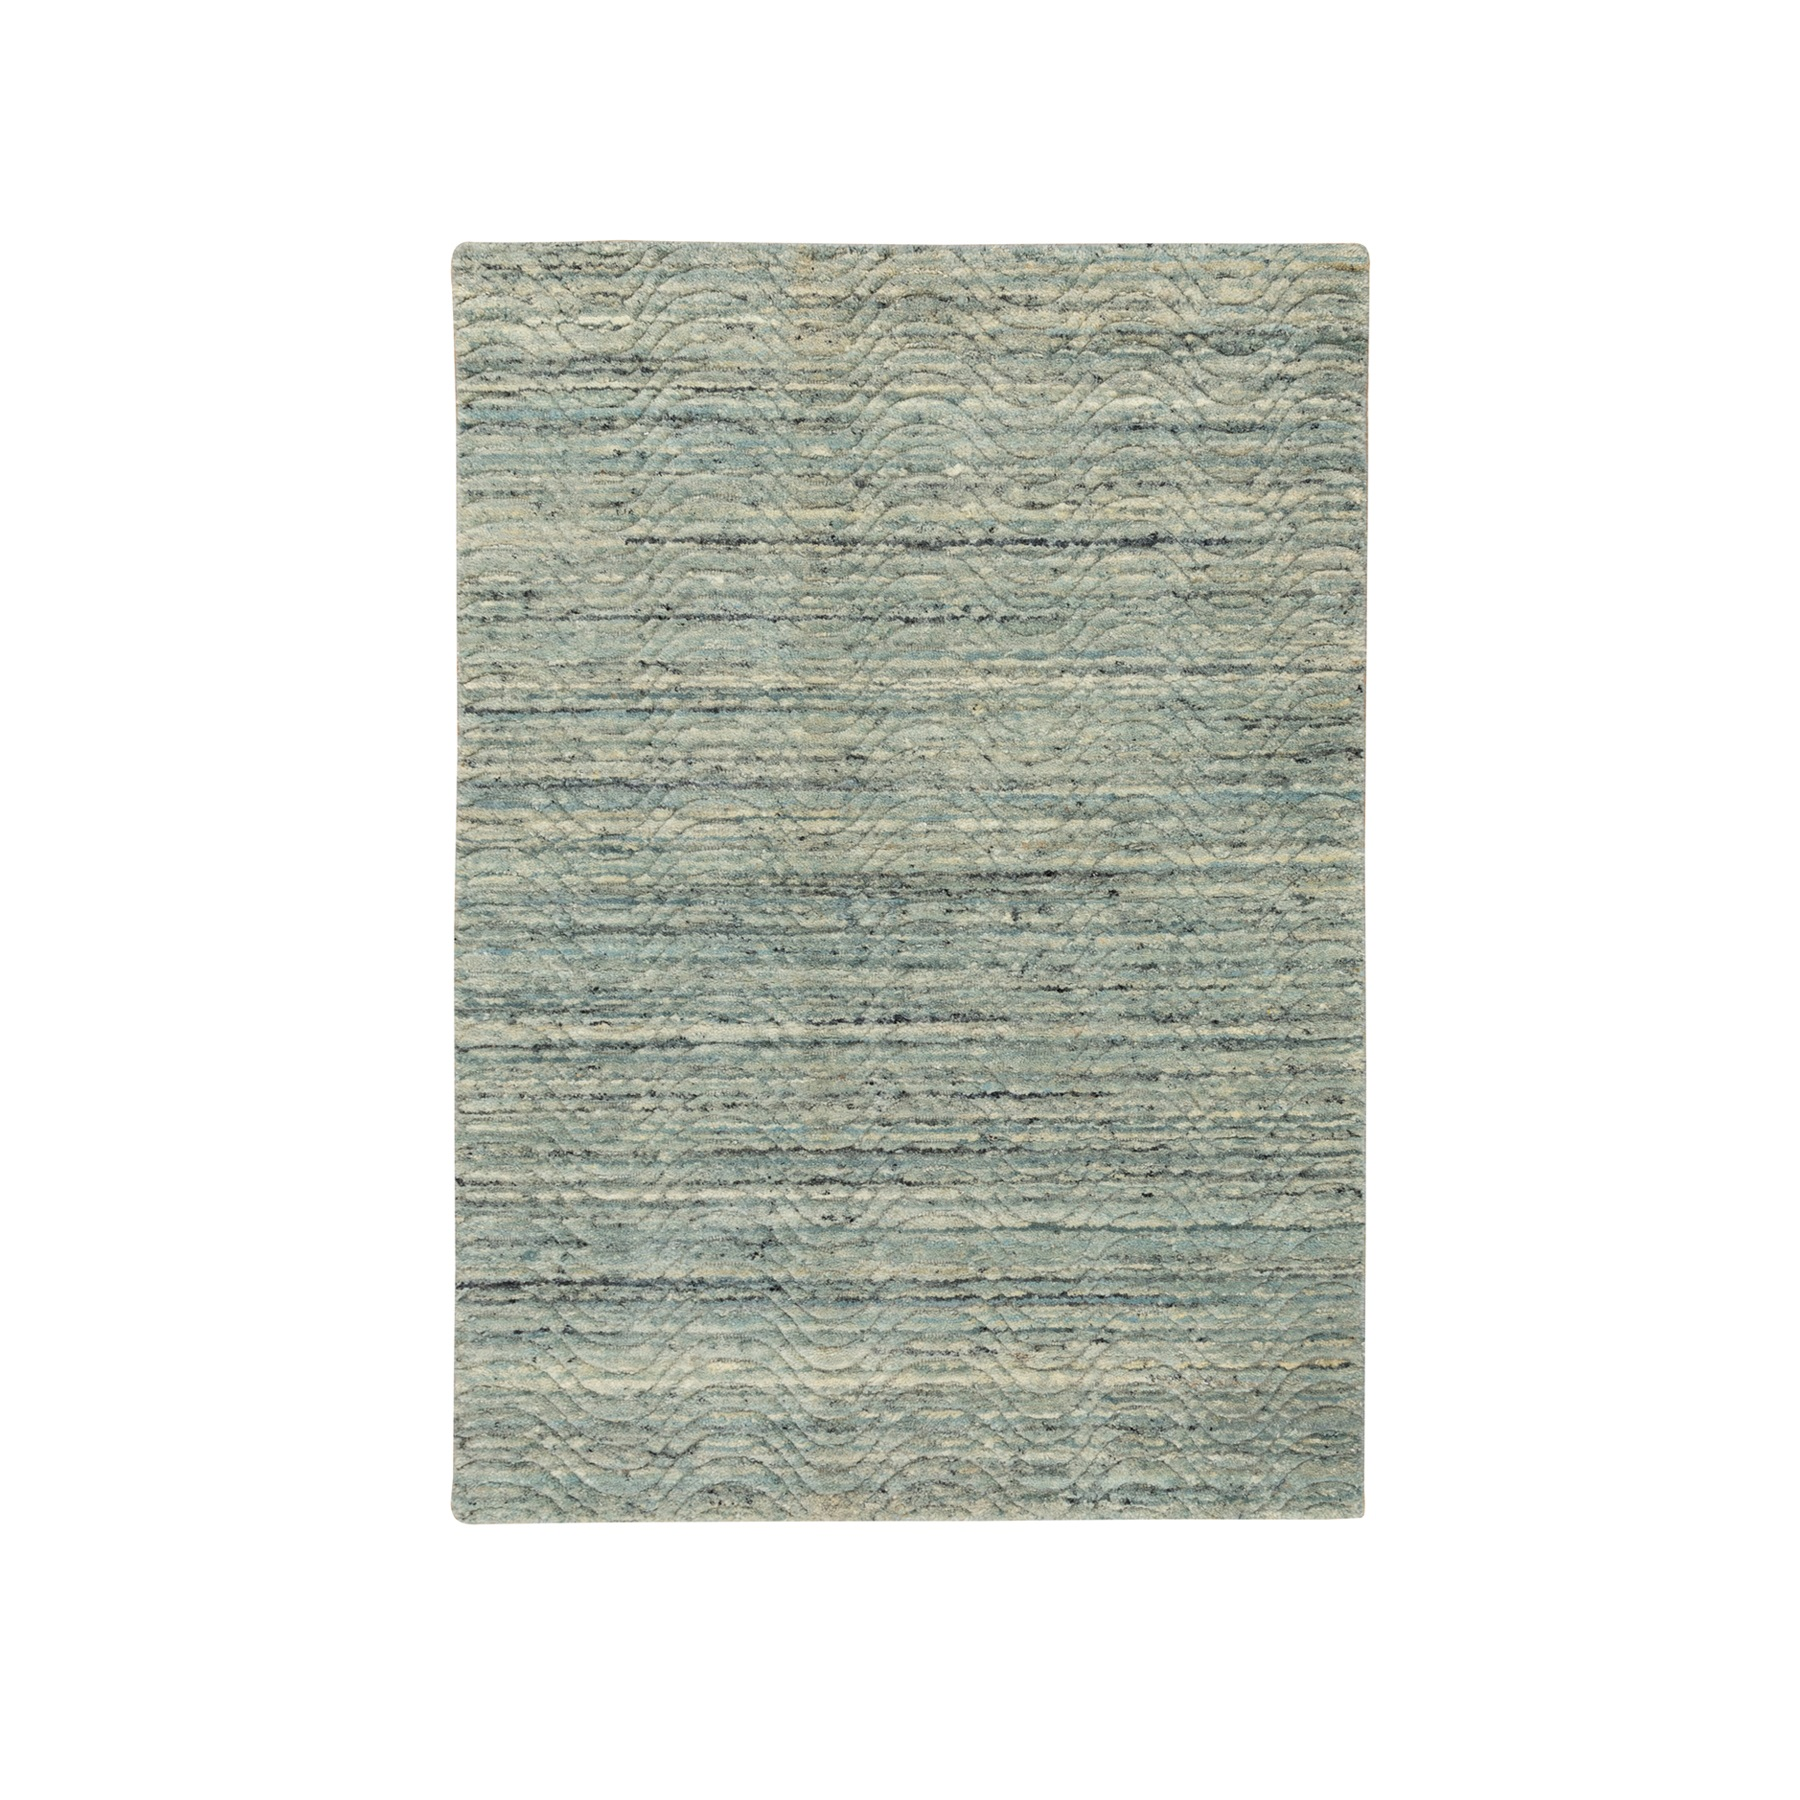 Mid Century Modern Collection Hand Loomed Green Rug No: 1117236